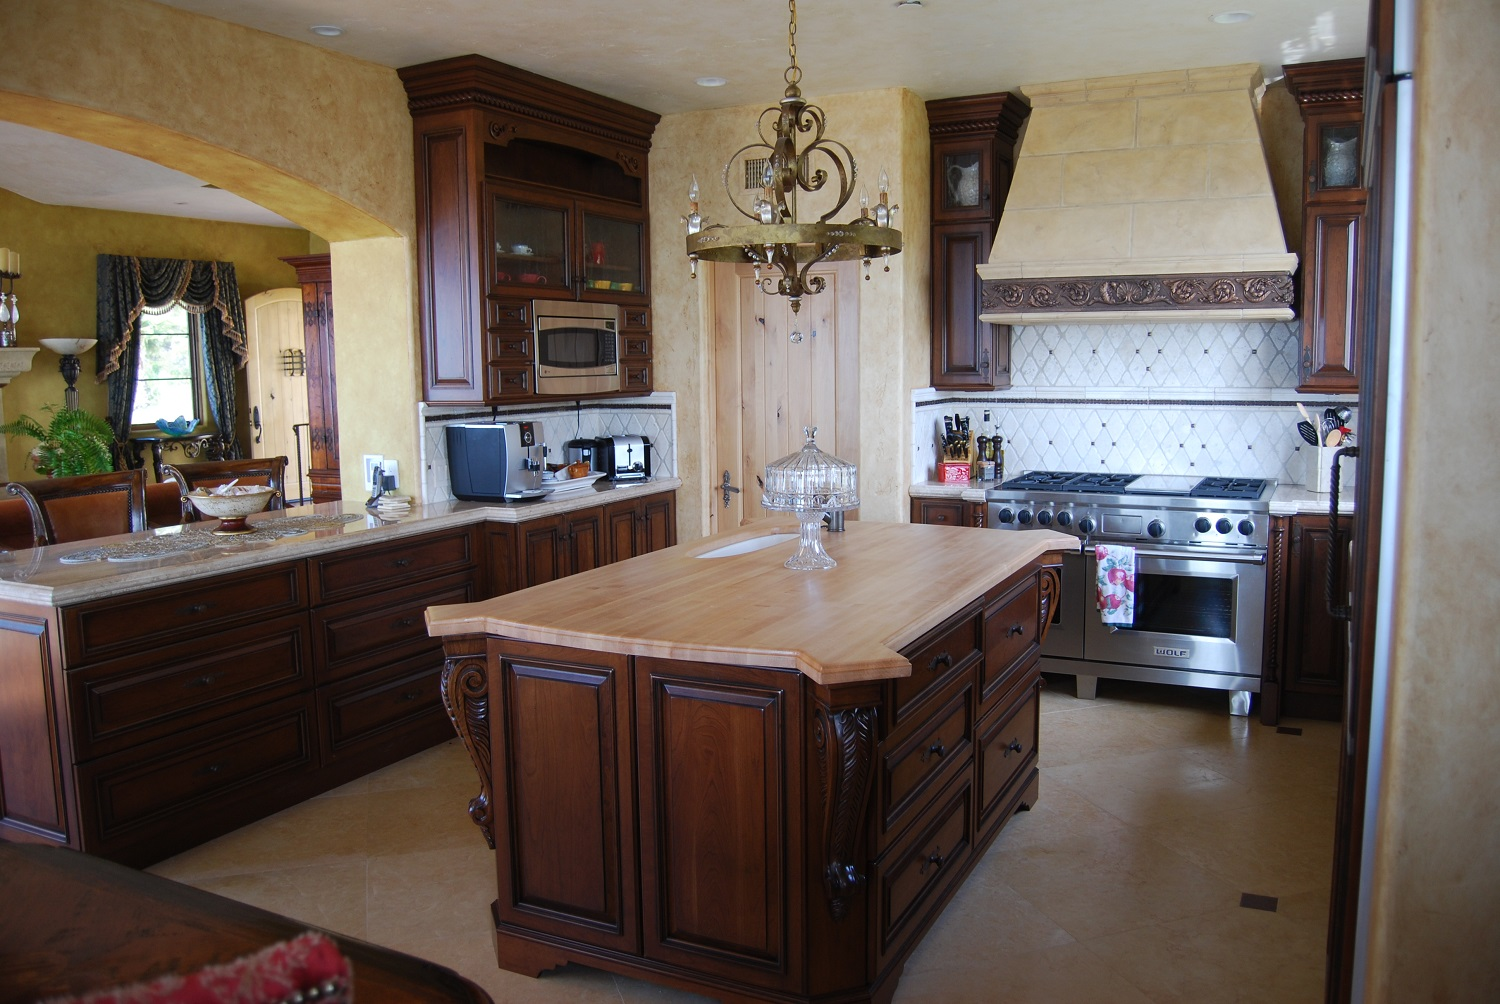 Dark cherry island and counter cabinets with corner detail